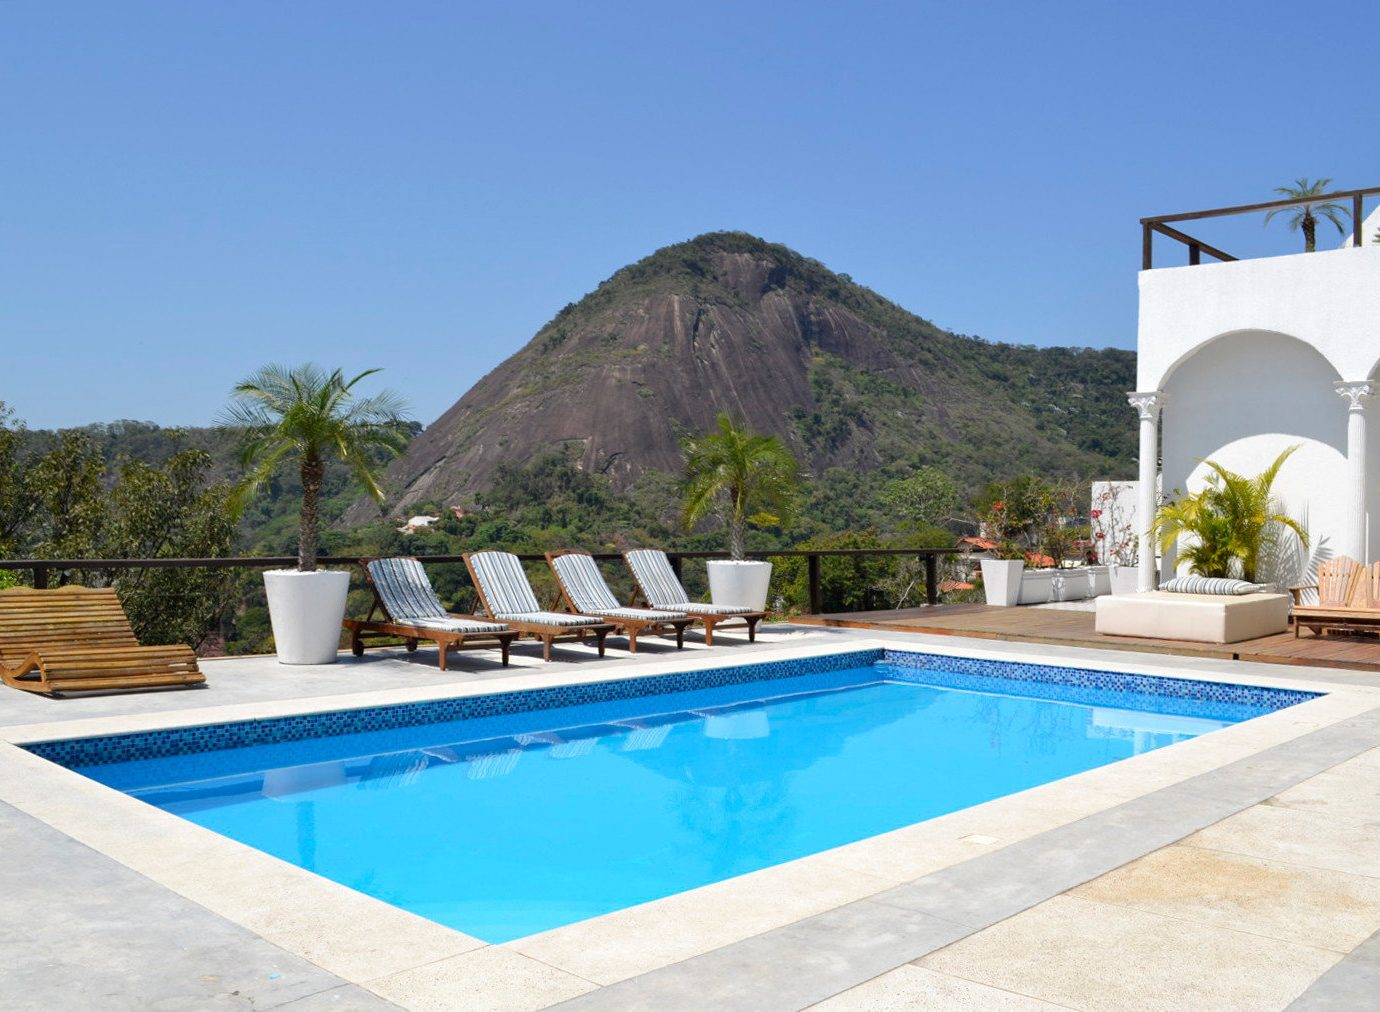 Hotels Romance sky Pool outdoor property swimming pool mountain estate Villa leisure real estate Resort blue vacation swimming amenity house